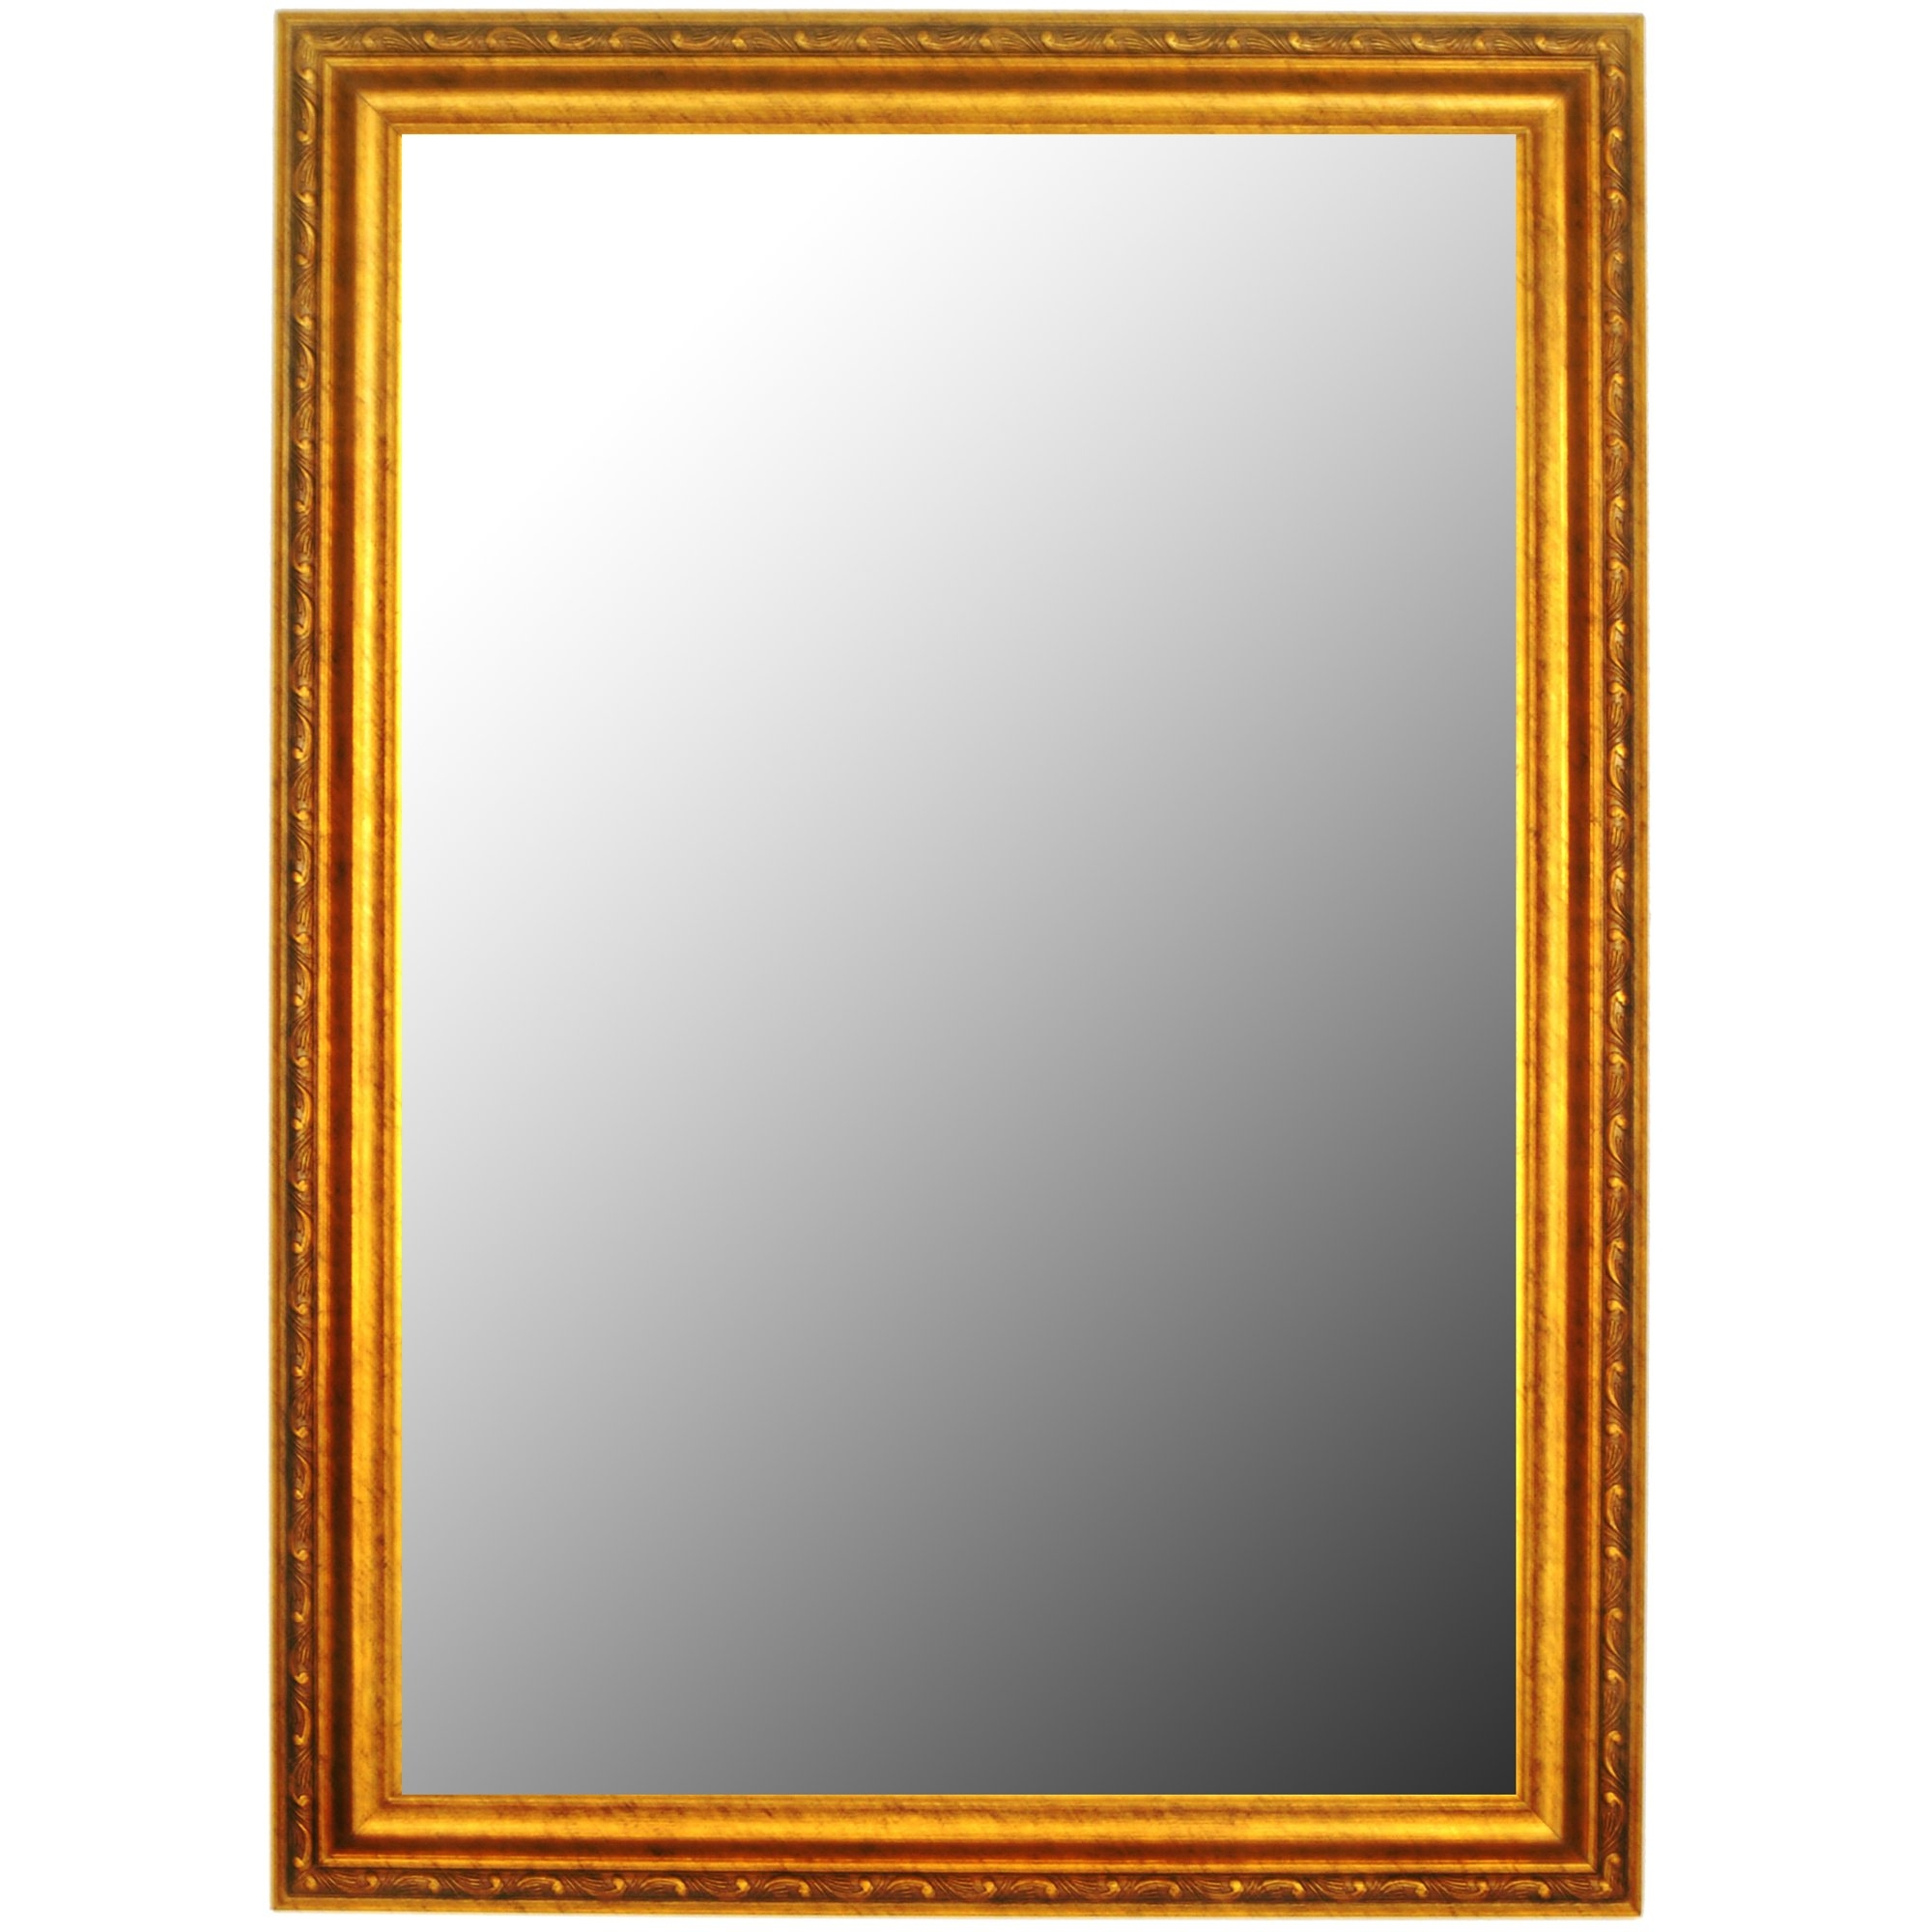 Second Look Mirrors Louis Xii French Gold Wall Mirror Reviews With French Gold Mirror (View 5 of 15)